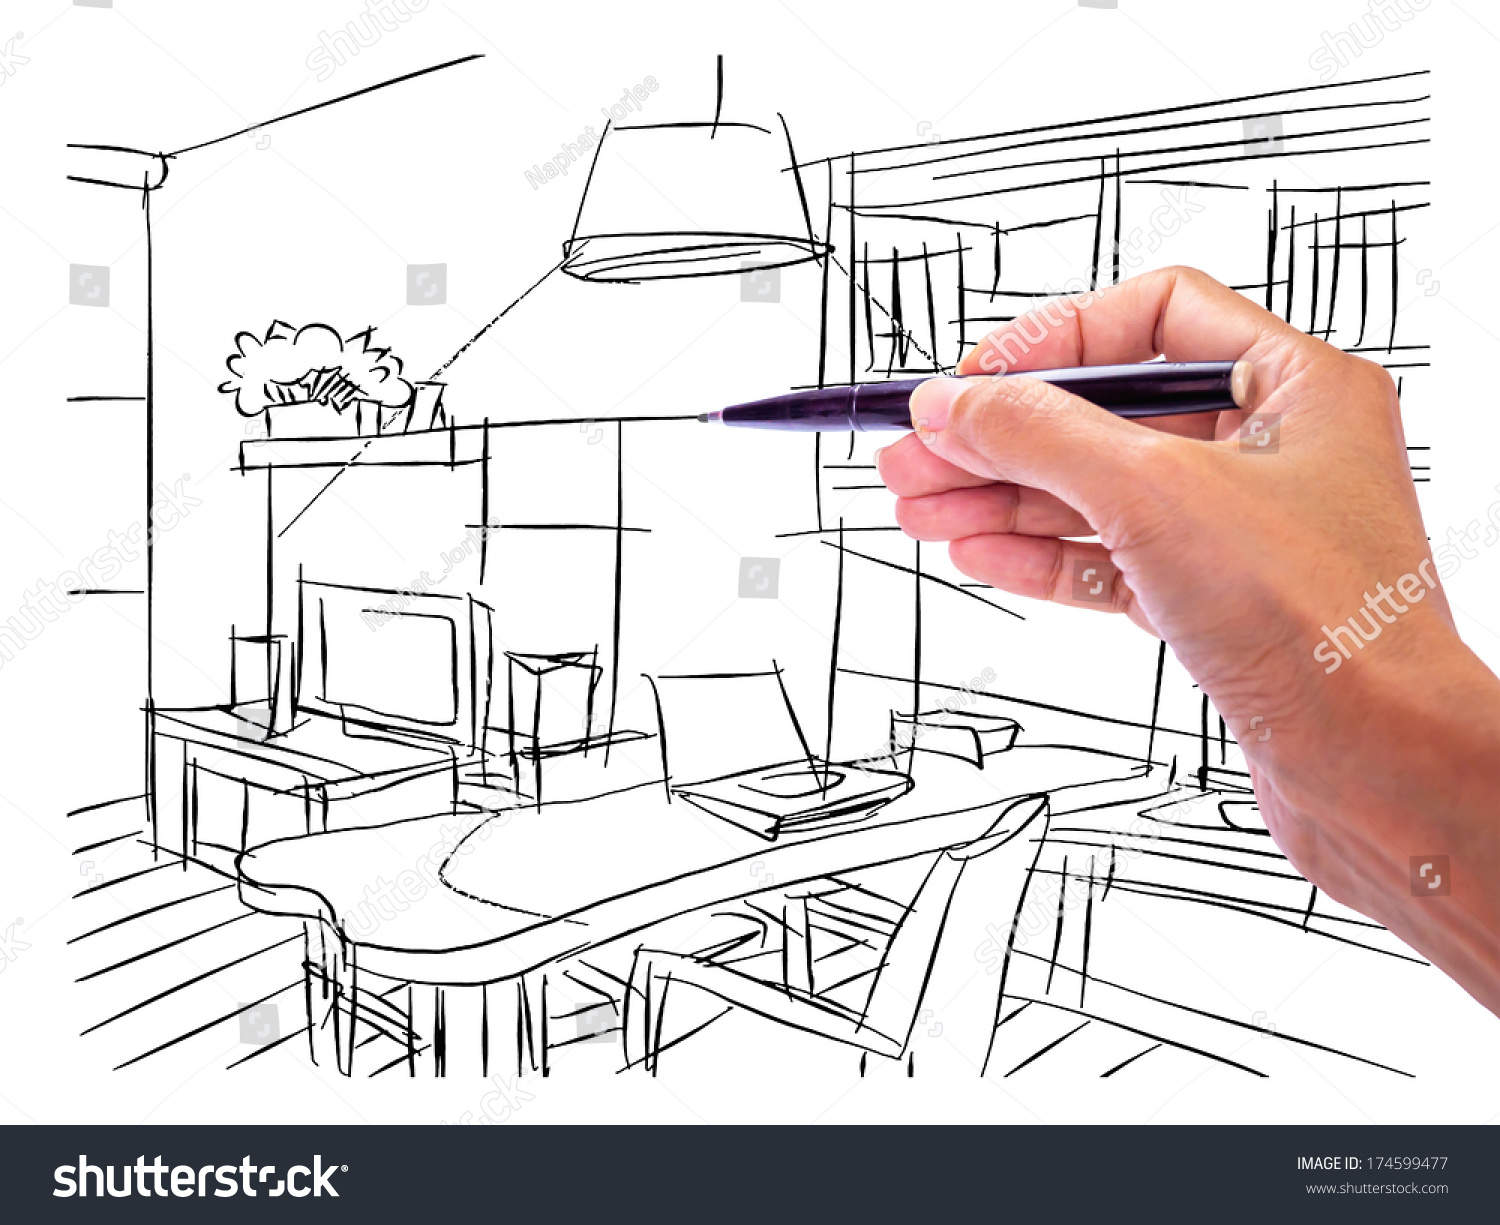 Living room perspective drawing - Designers Hand Drawing Interior Perspective Modern Stock Photo